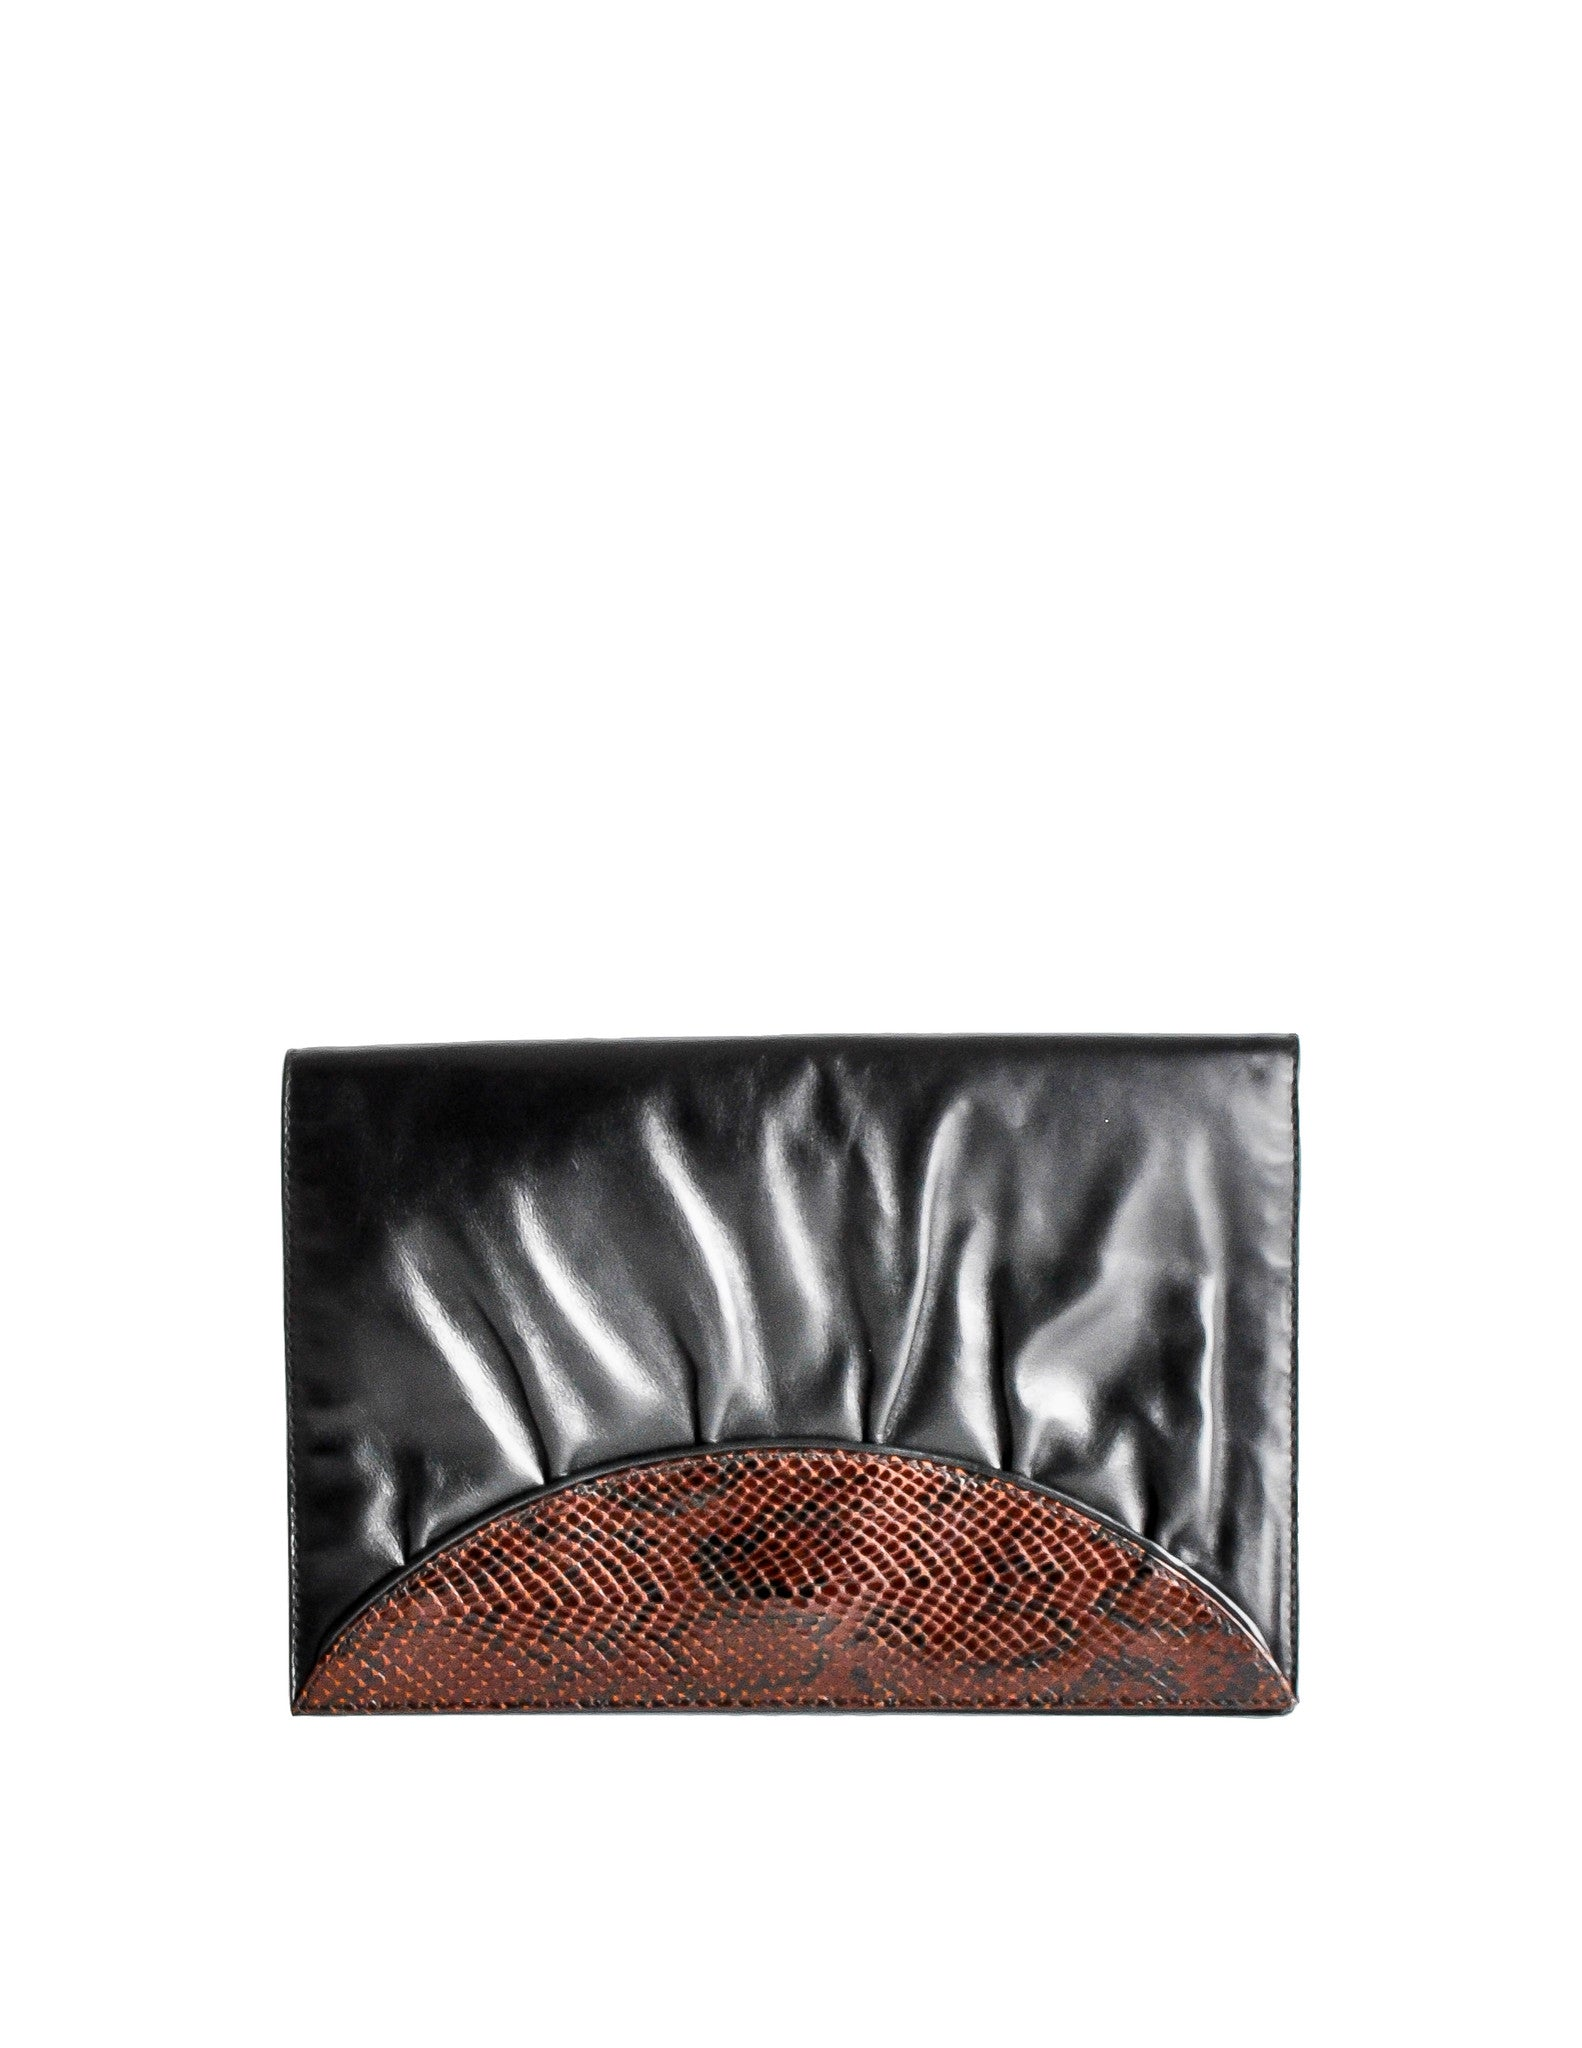 Fendi Vintage Black and Brown Leather Clutch Purse - Amarcord Vintage Fashion  - 1